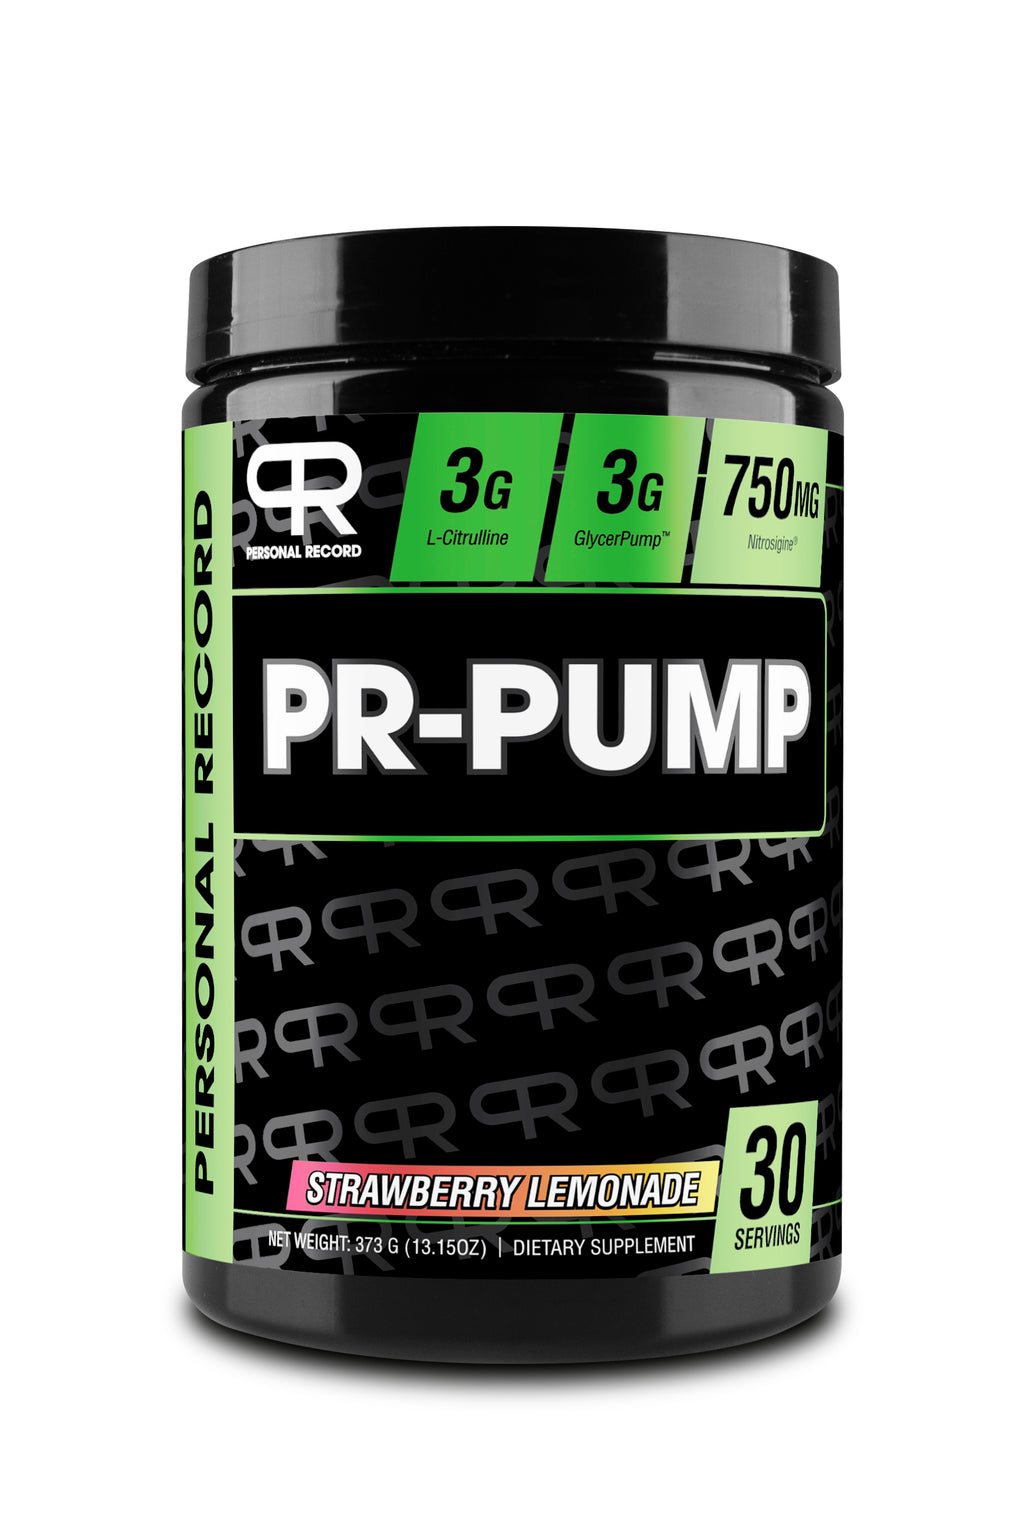 PR Supps - PUMP - Strawberry Lemonade